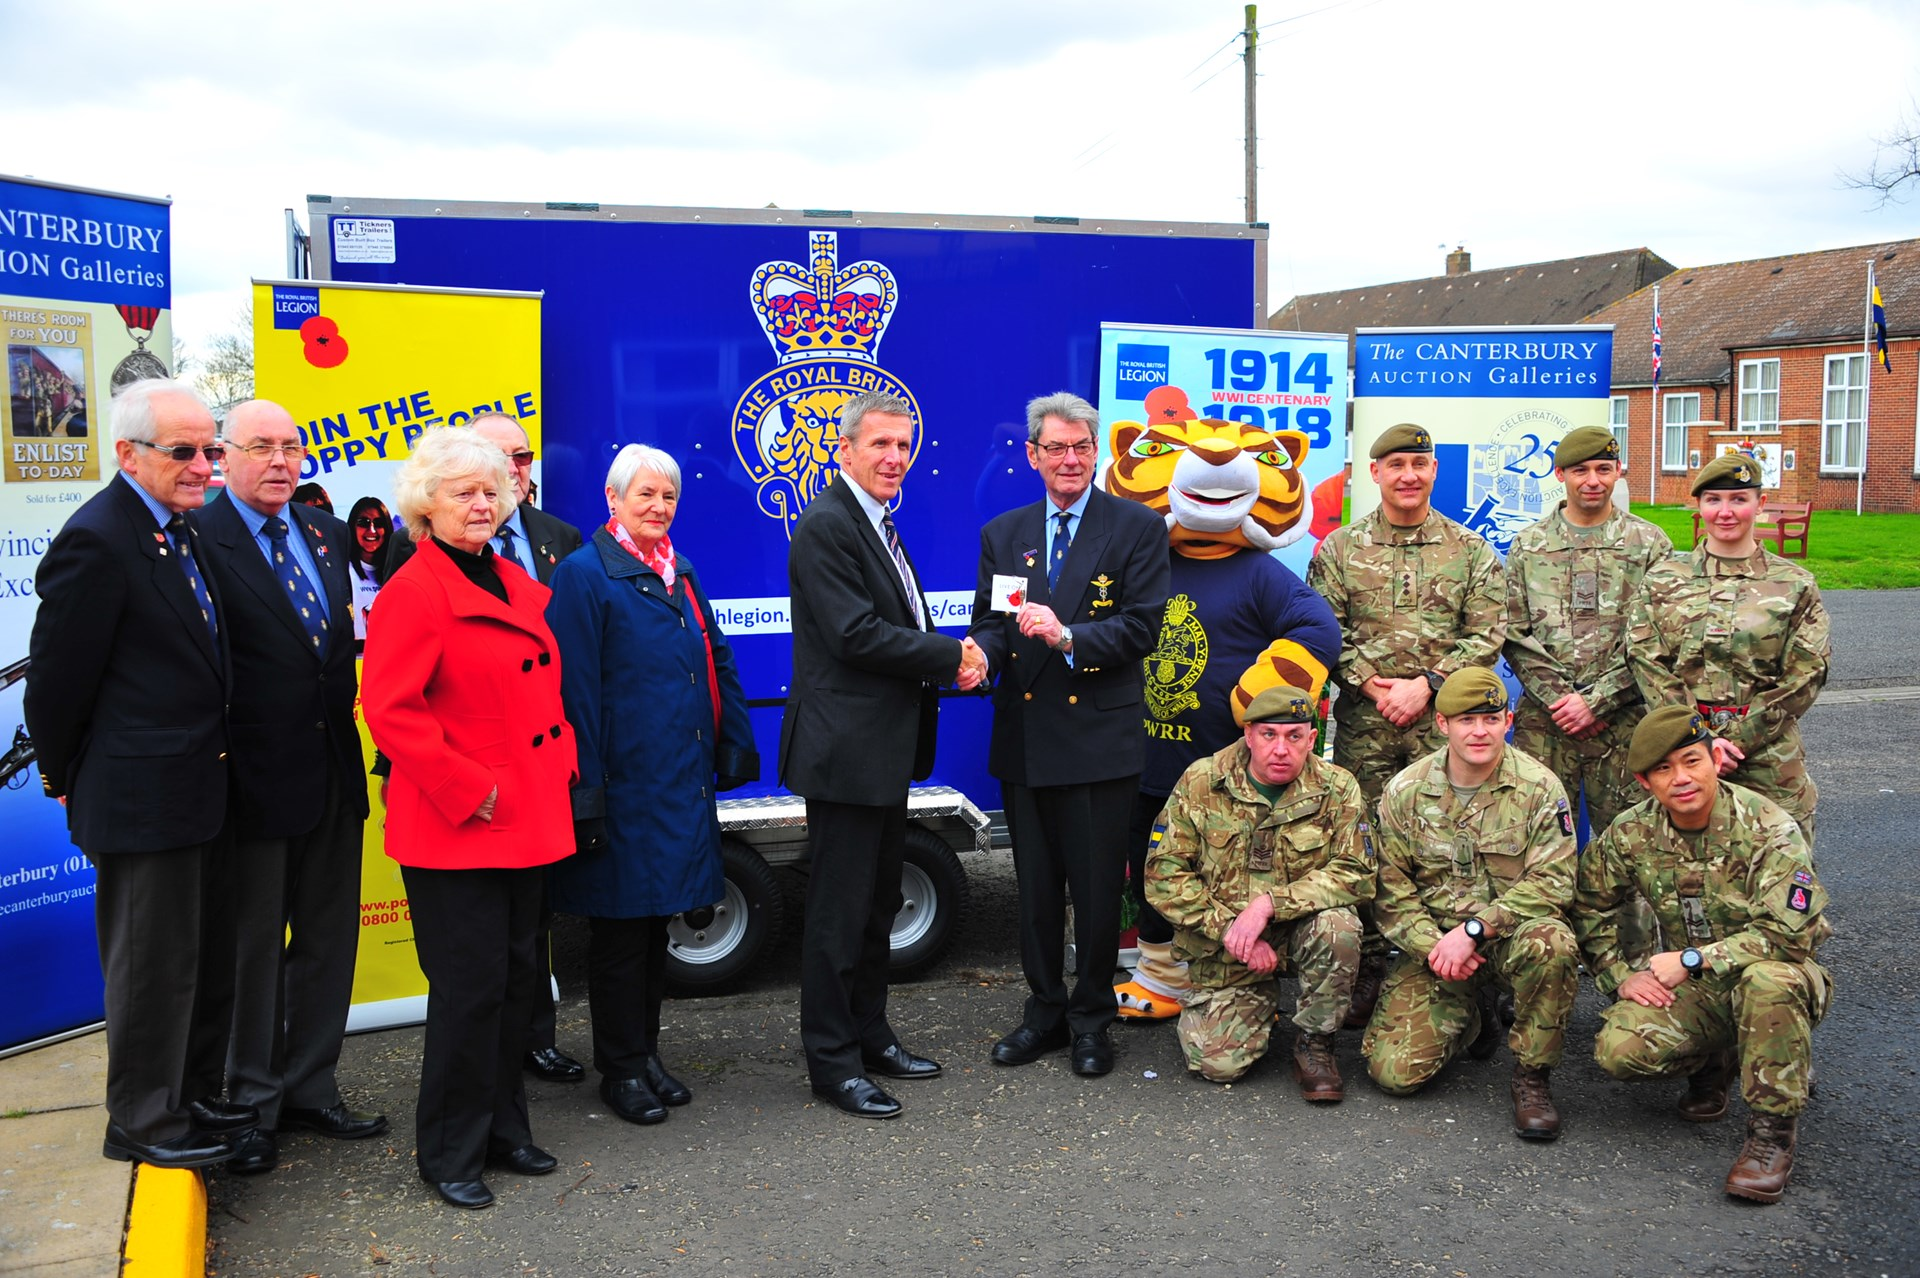 2015 catalogue proceeds raised £5750 for Royal British Legion Banner Image